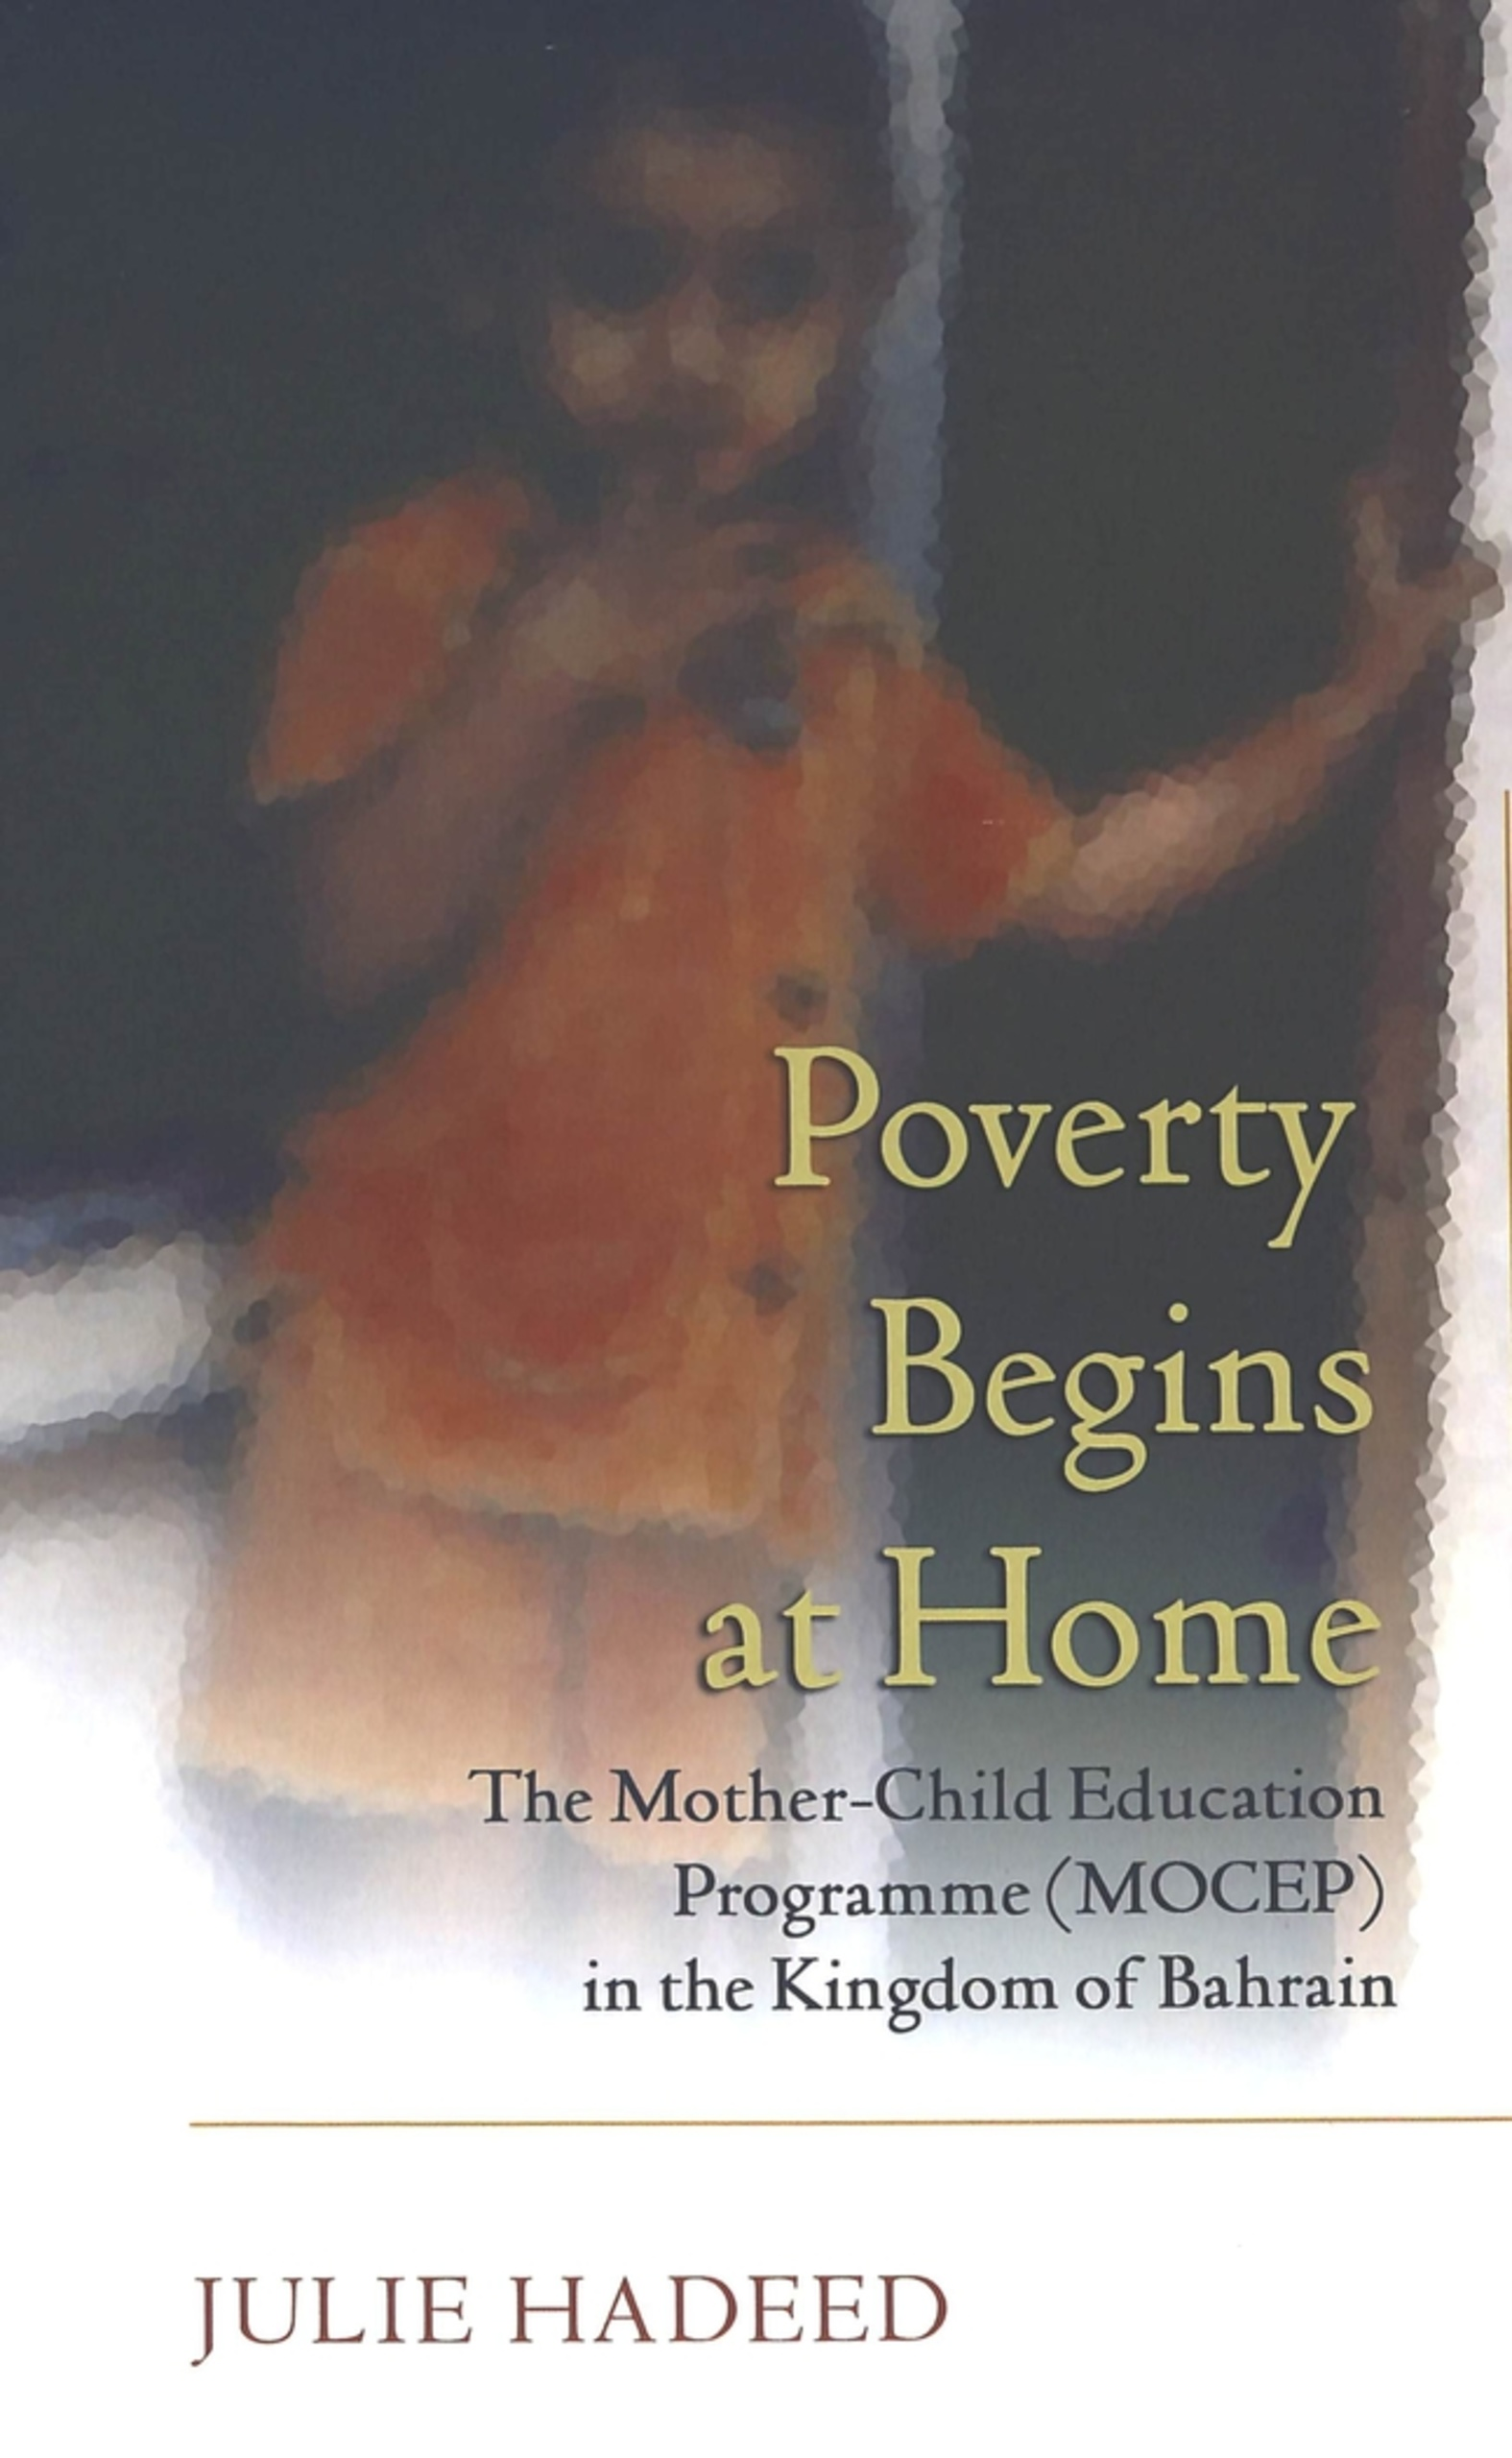 Title: Poverty Begins at Home